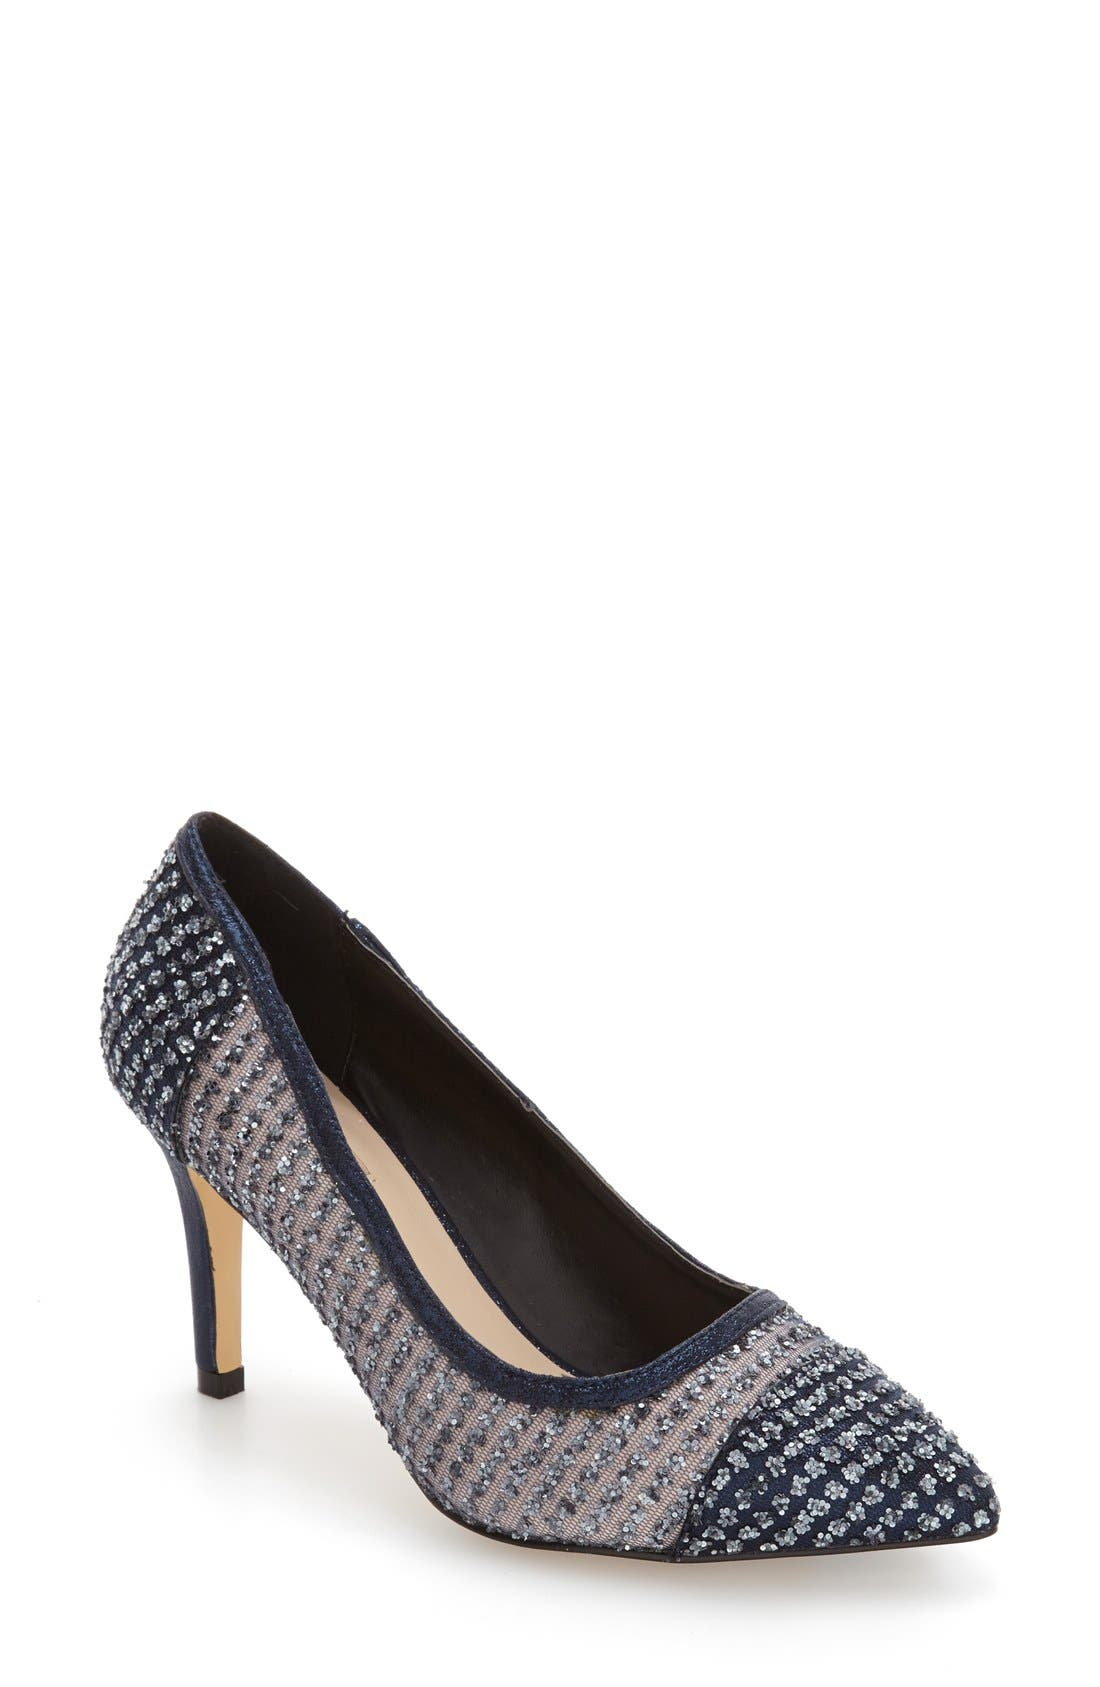 Alternate Image 1 Selected - Menbur Tambre Embellished Pointy Toe Pump (Women)